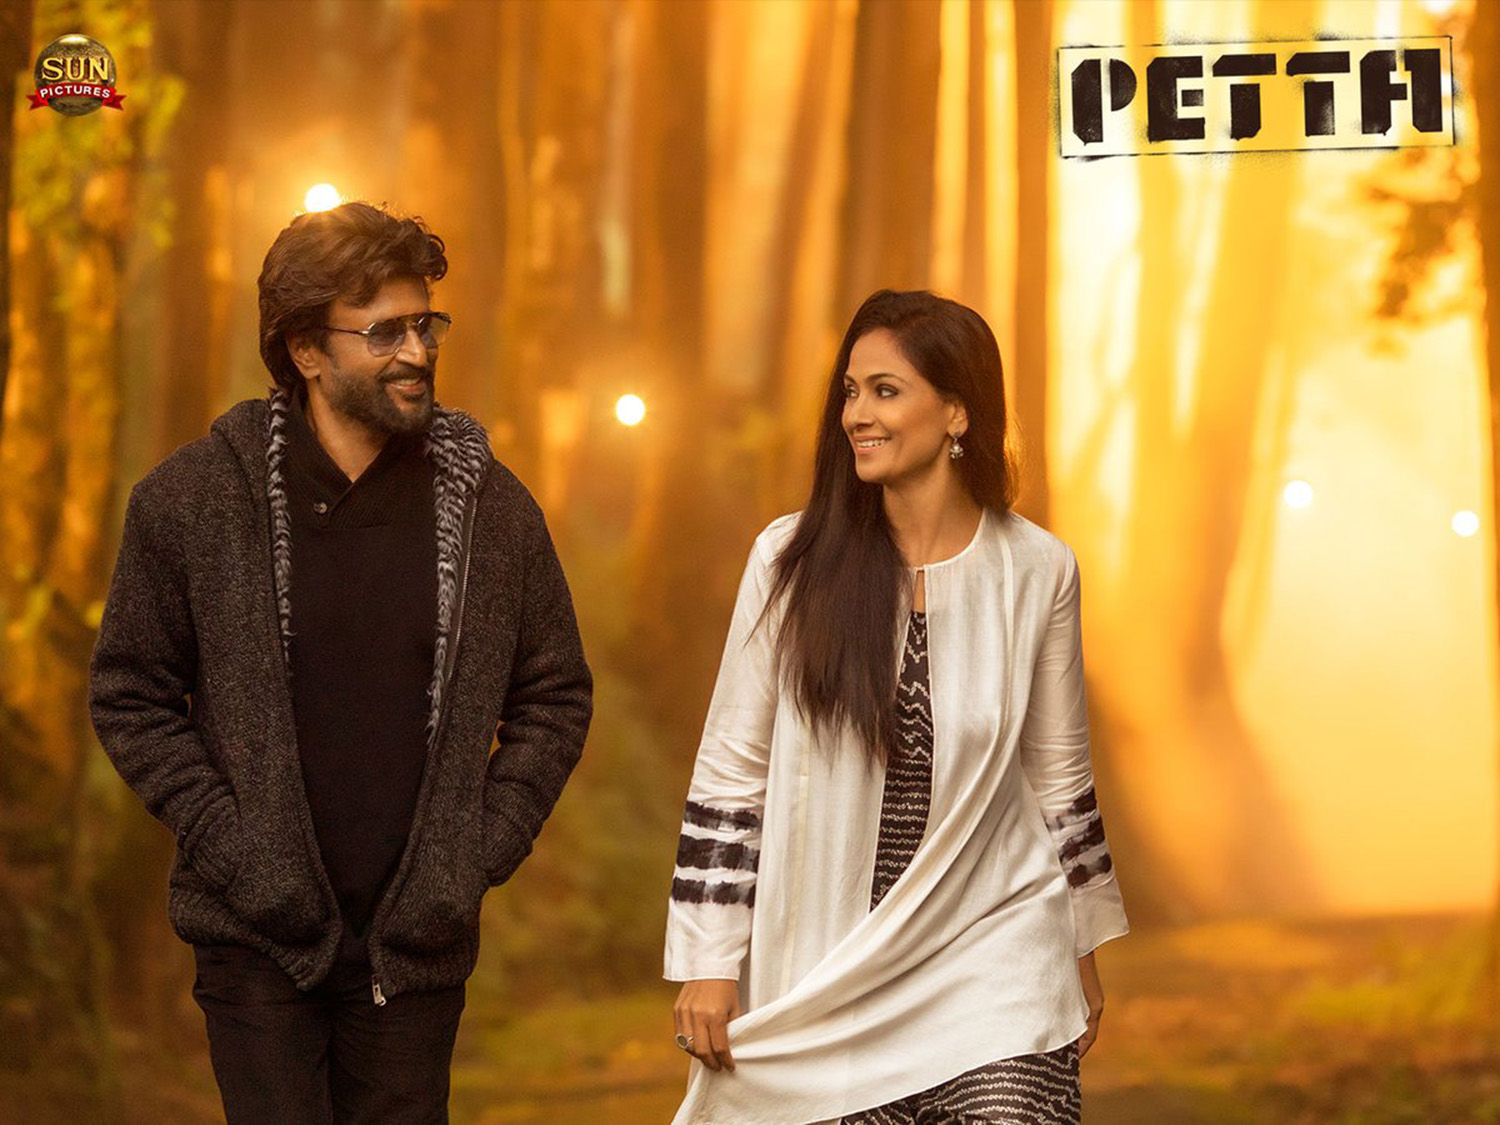 Petta,rajinikanth,simran,petta poster,petta movie stills,rajinikanth and simran in petta,simran in petta,karthik subbaraj,vijay sethupathi